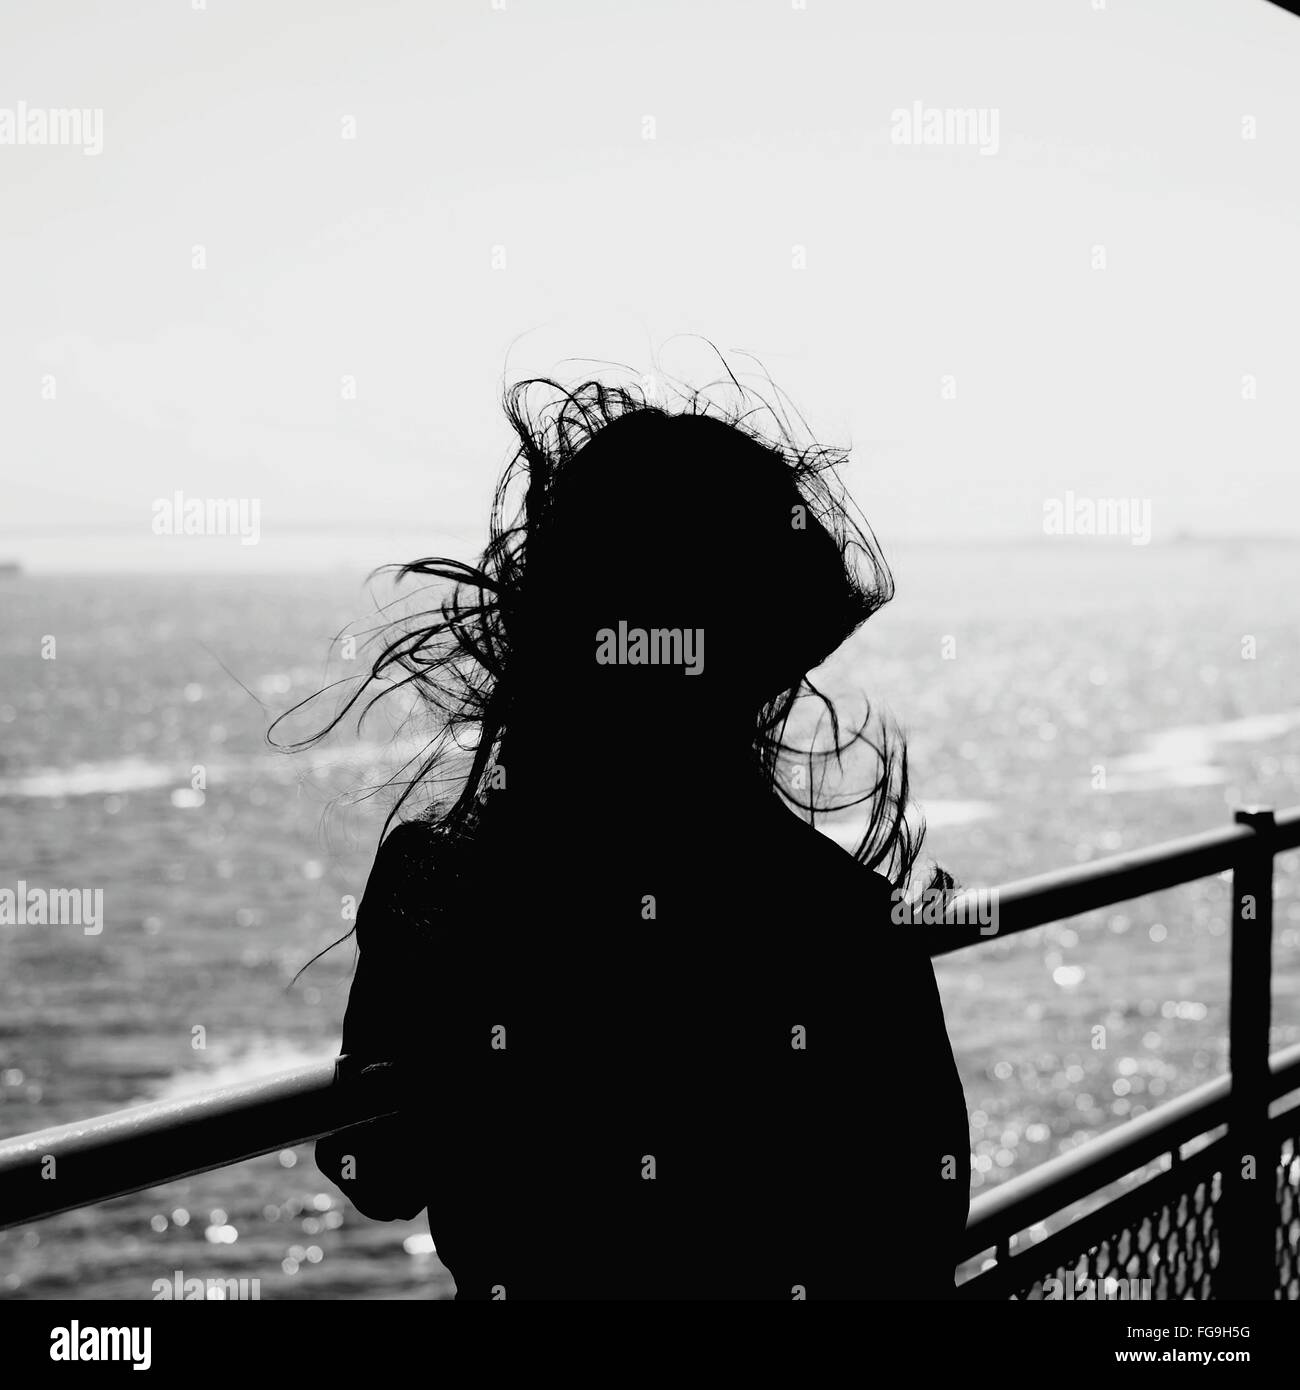 Rear View Of Silhouette Woman Standing At Railing Against Sea - Stock Image